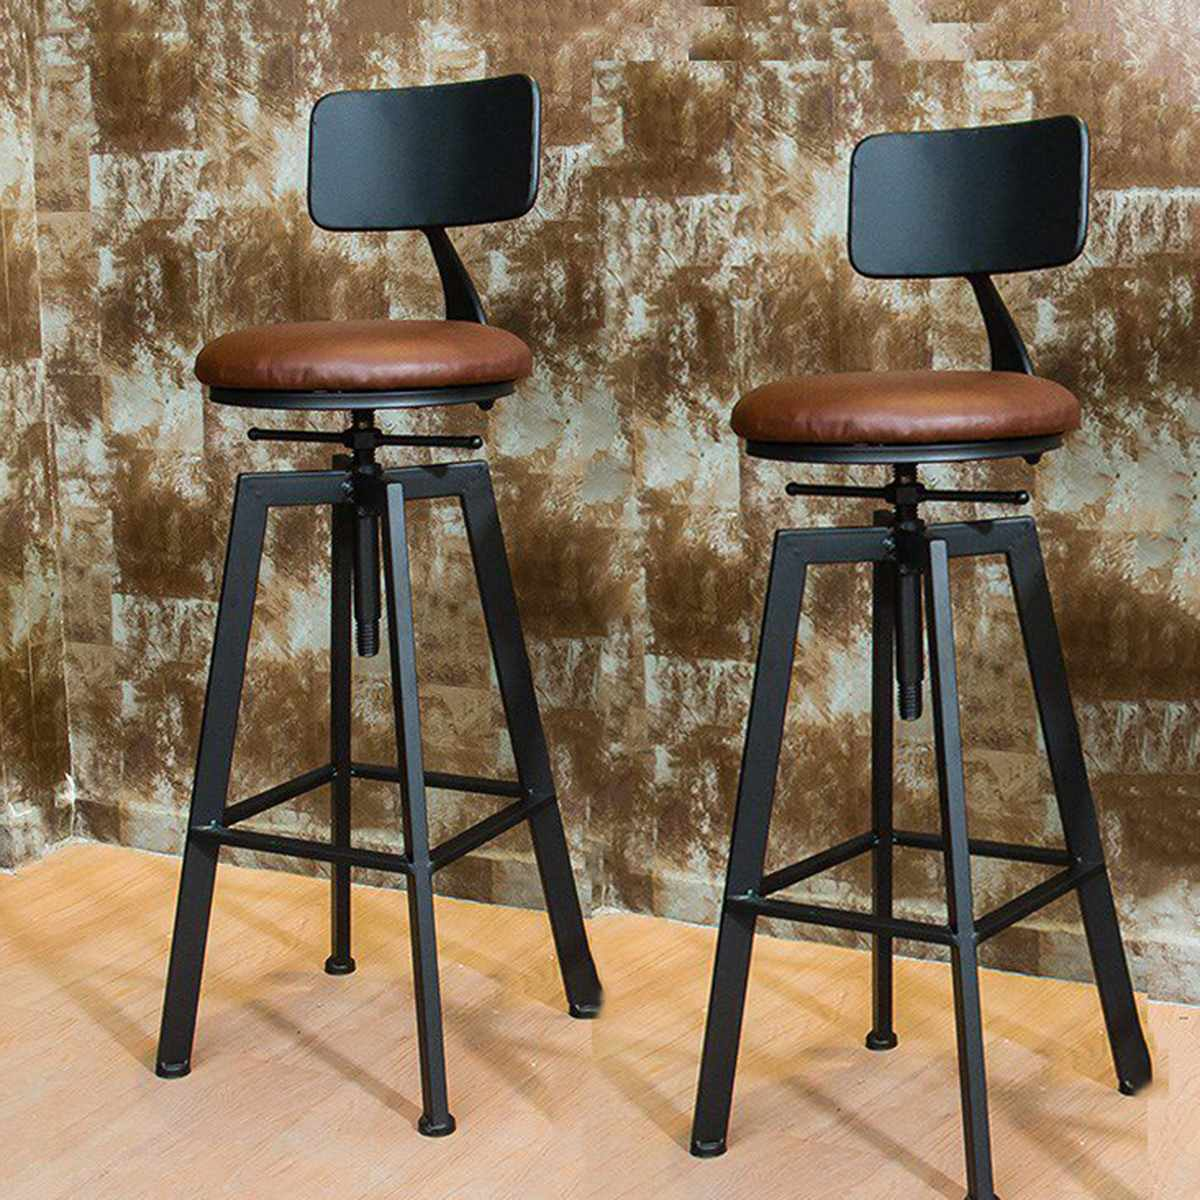 US $121.11 |Adjustable VINTAGE RETRO LOOK RUSTIC KITCHEN BAR STOOL CAFE  CHAIR FOR HOME KITCHEN RESTAURANT COFFEE SHOP DINNING-in Bar Chairs from ...